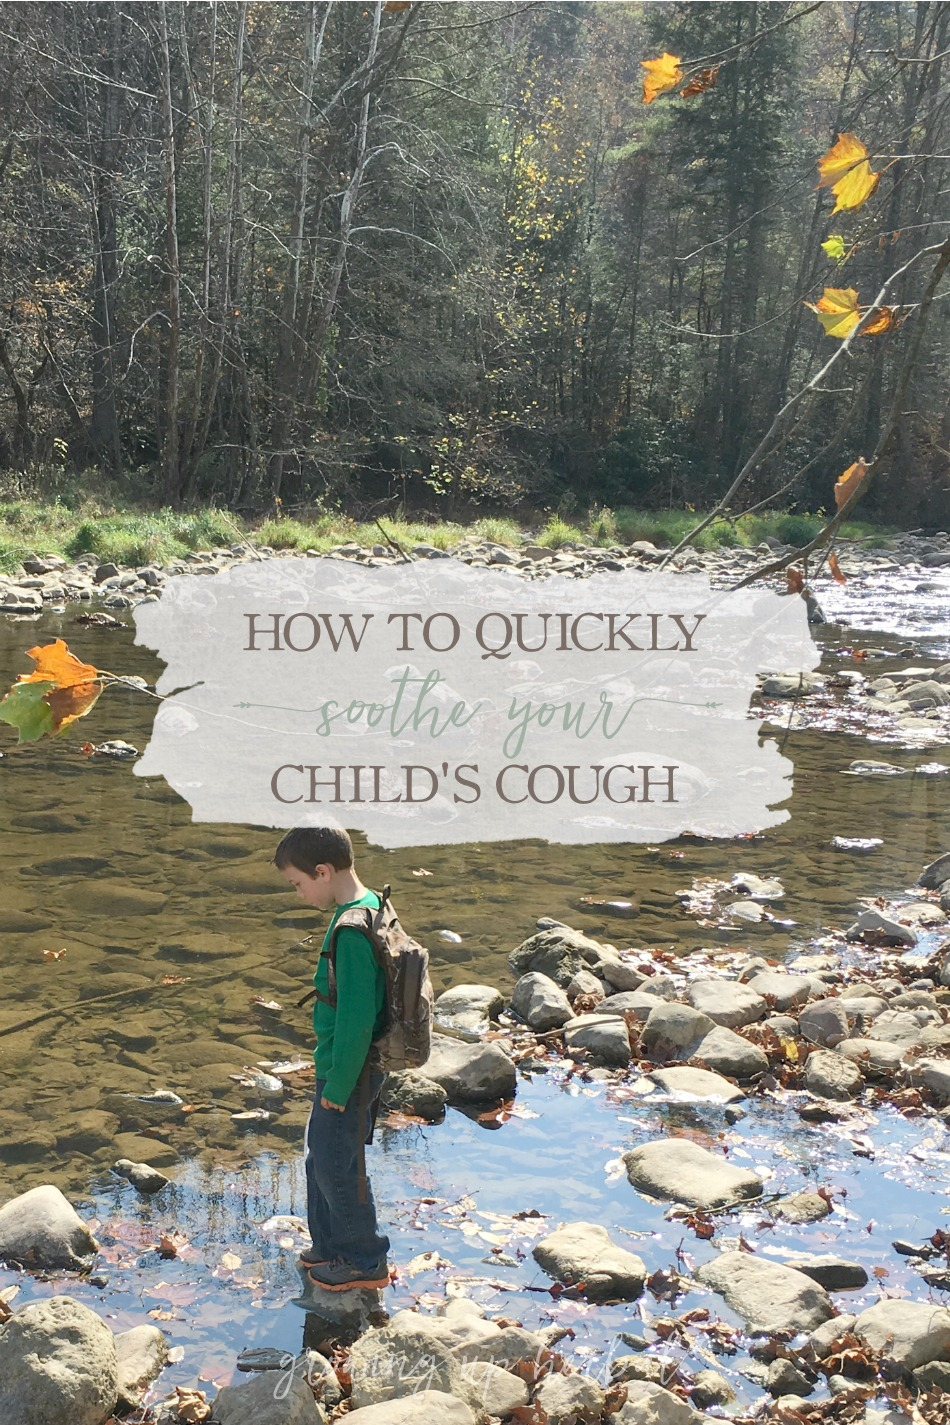 How To Quickly Soothe Your Child's Cough | Growing Up Herbal | Comfort your child and help soothe their cough using this safe, effective, natural cough remedy!